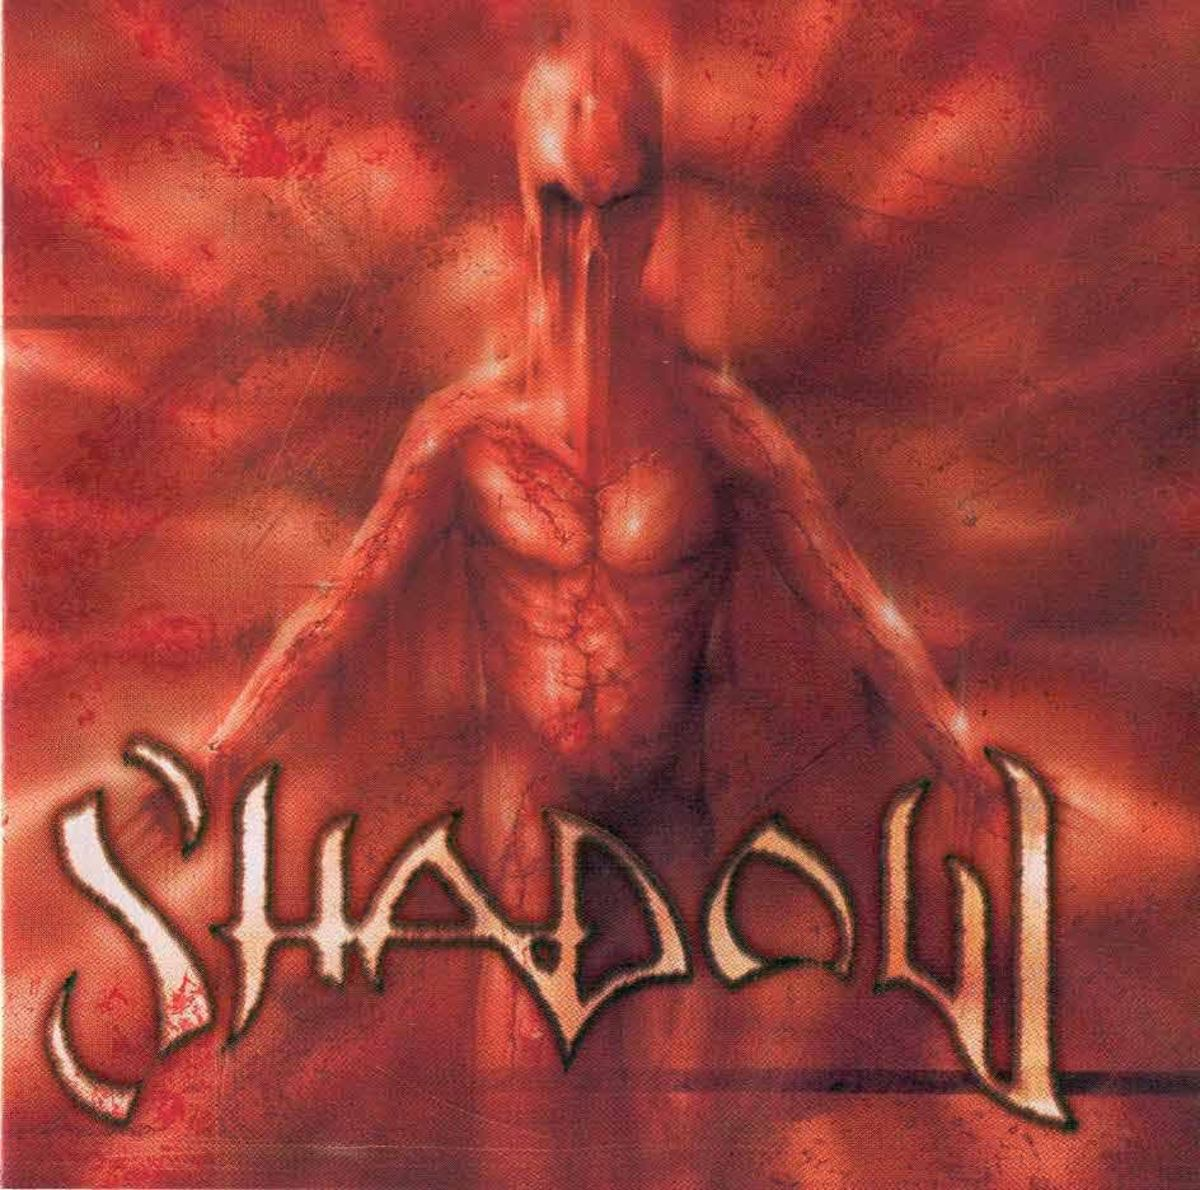 Forgotten Melodic death metal albums:Shadow a review of the album by this awesome melodic death metal band